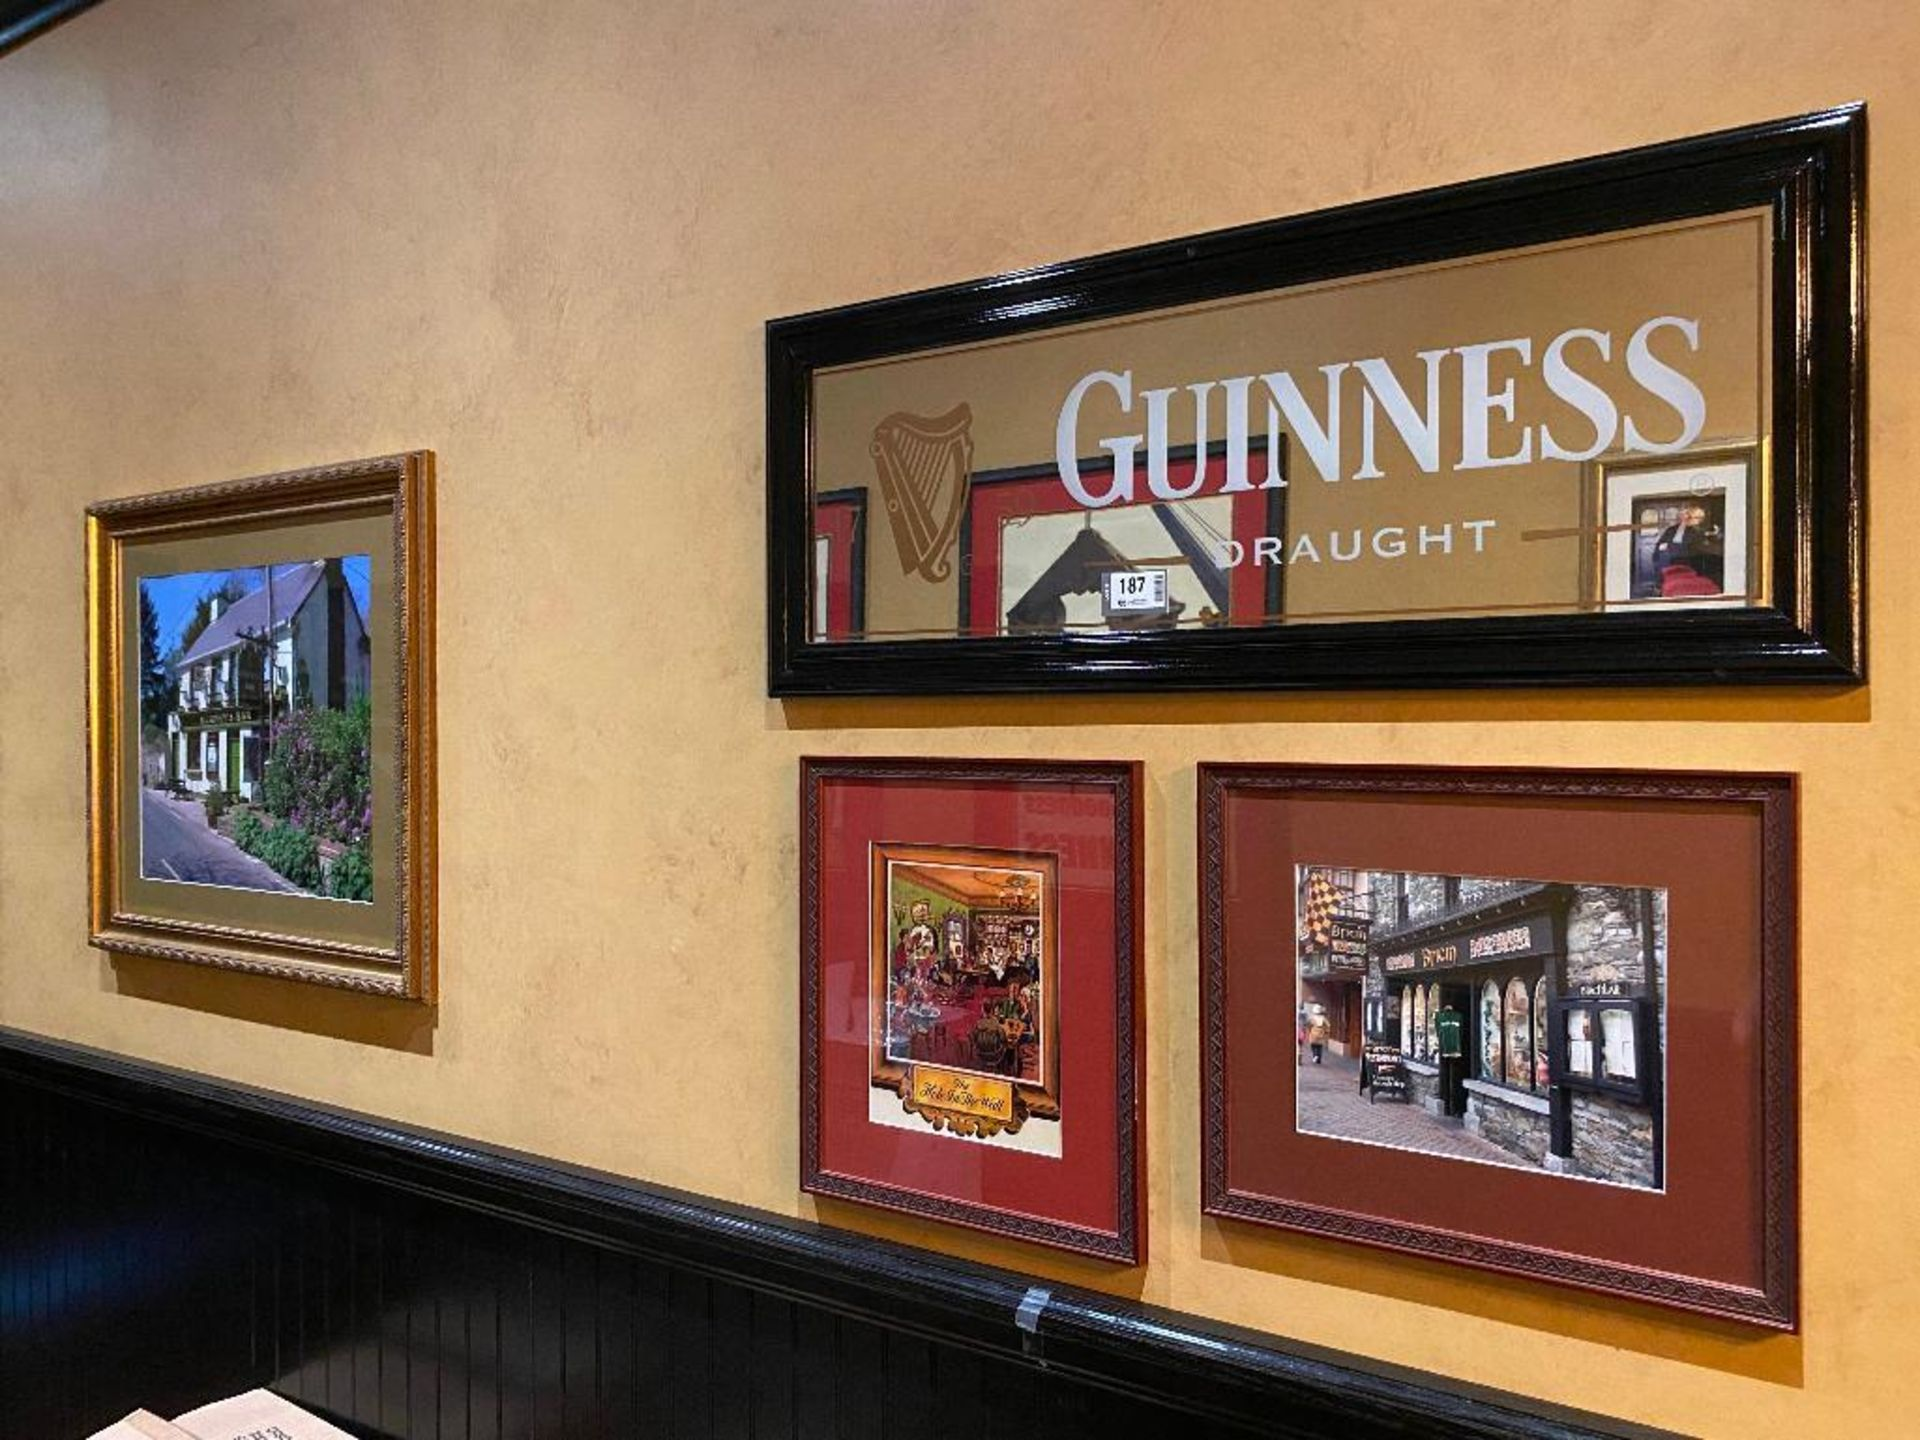 LOT OF (3) FRAMED MEMORABILIA PHOTOS & (1) GUINNESS MIRROR - NOTE: REQUIRES REMOVAL FROM WALL, PLEAS - Image 5 of 5